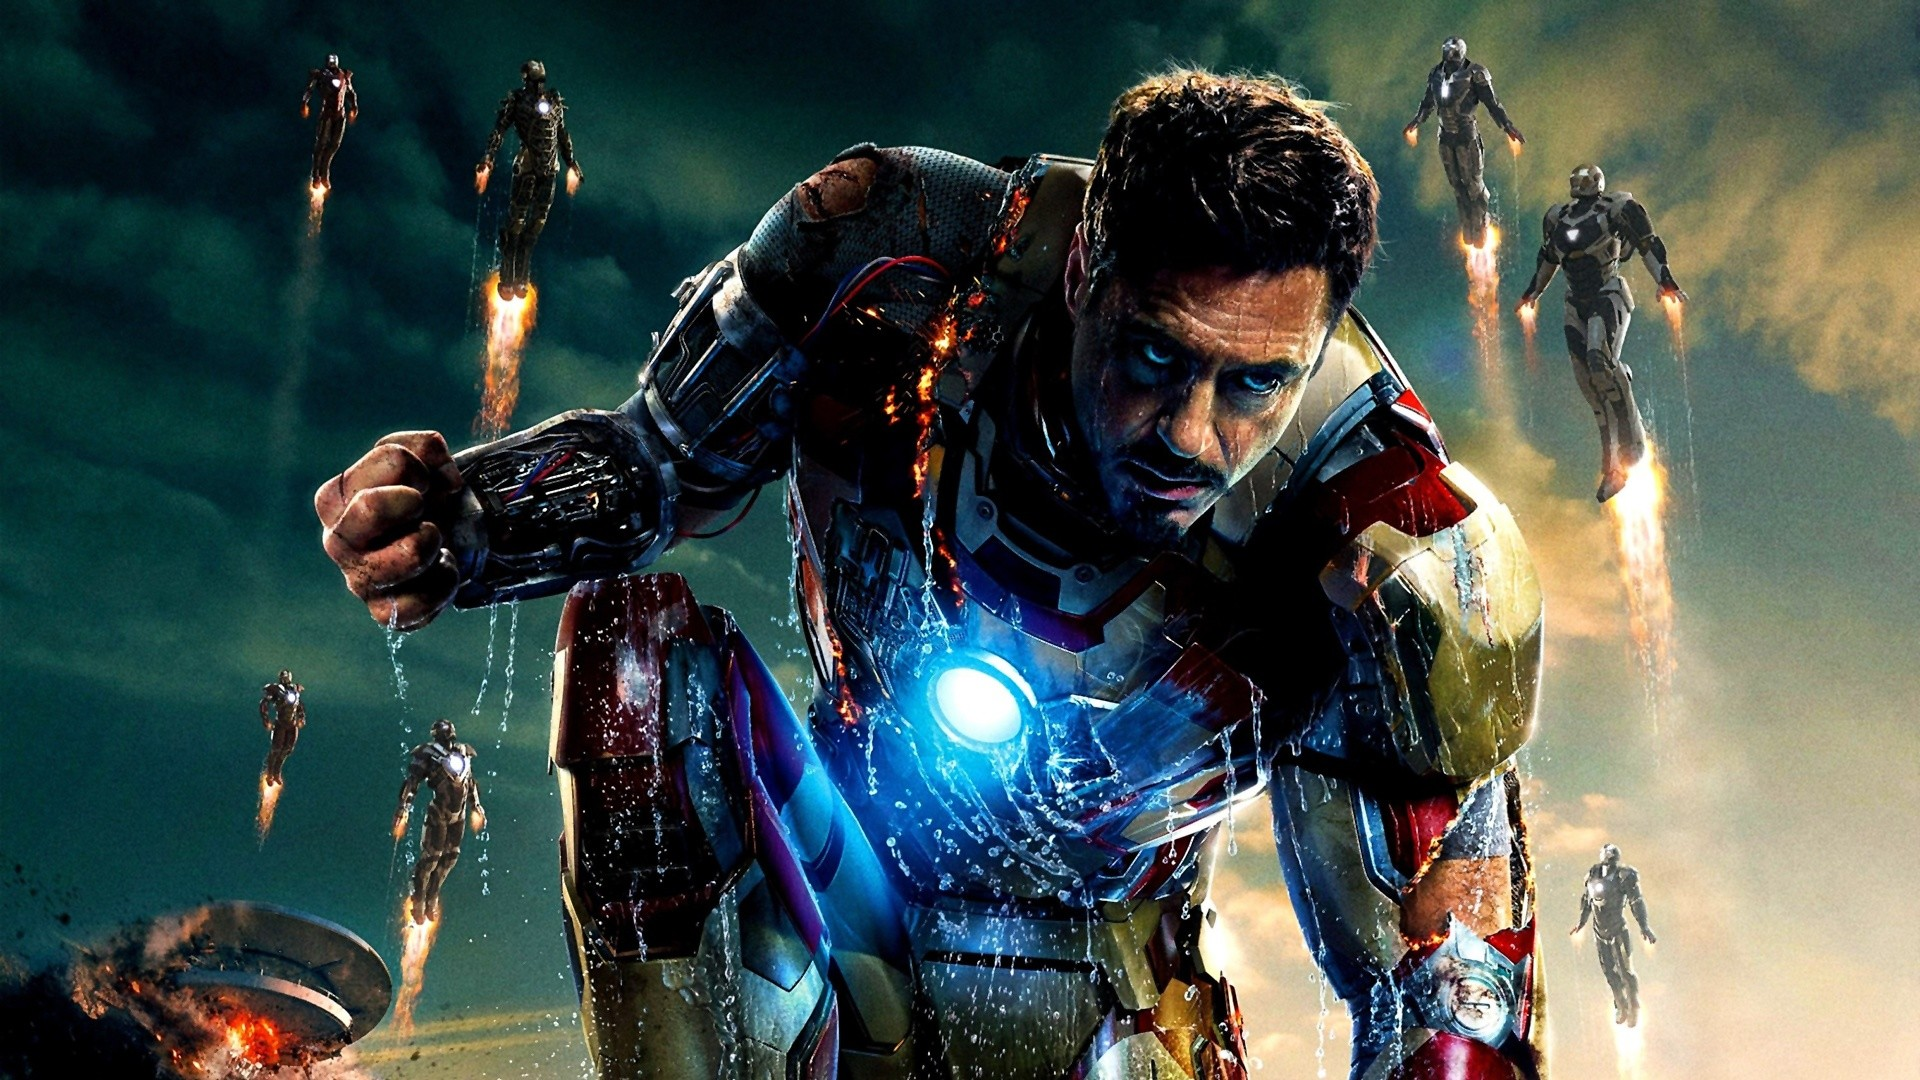 Iron Man Wallpapers in Best px Resolutions | Brittani Noggle  AHDzBooK Wallpapers